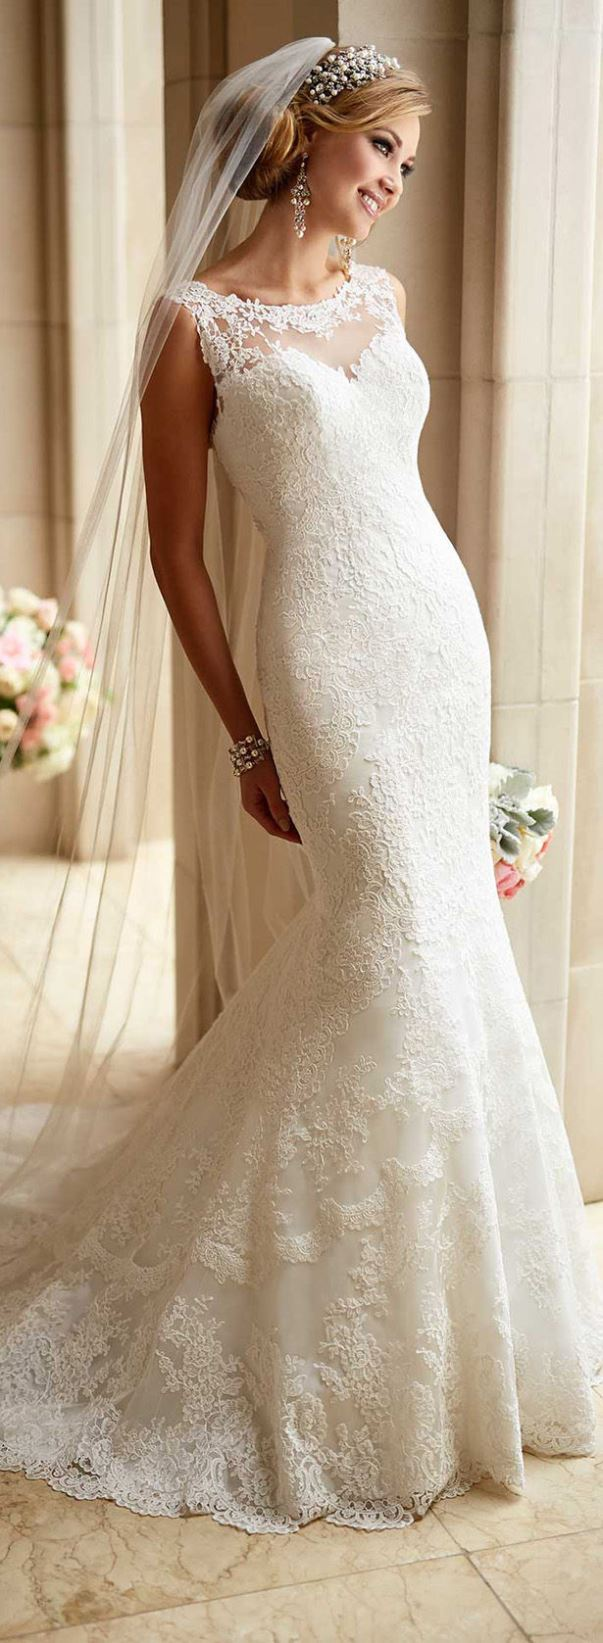 Stella York 2016 Bridal Collection LoveweddingsNG15